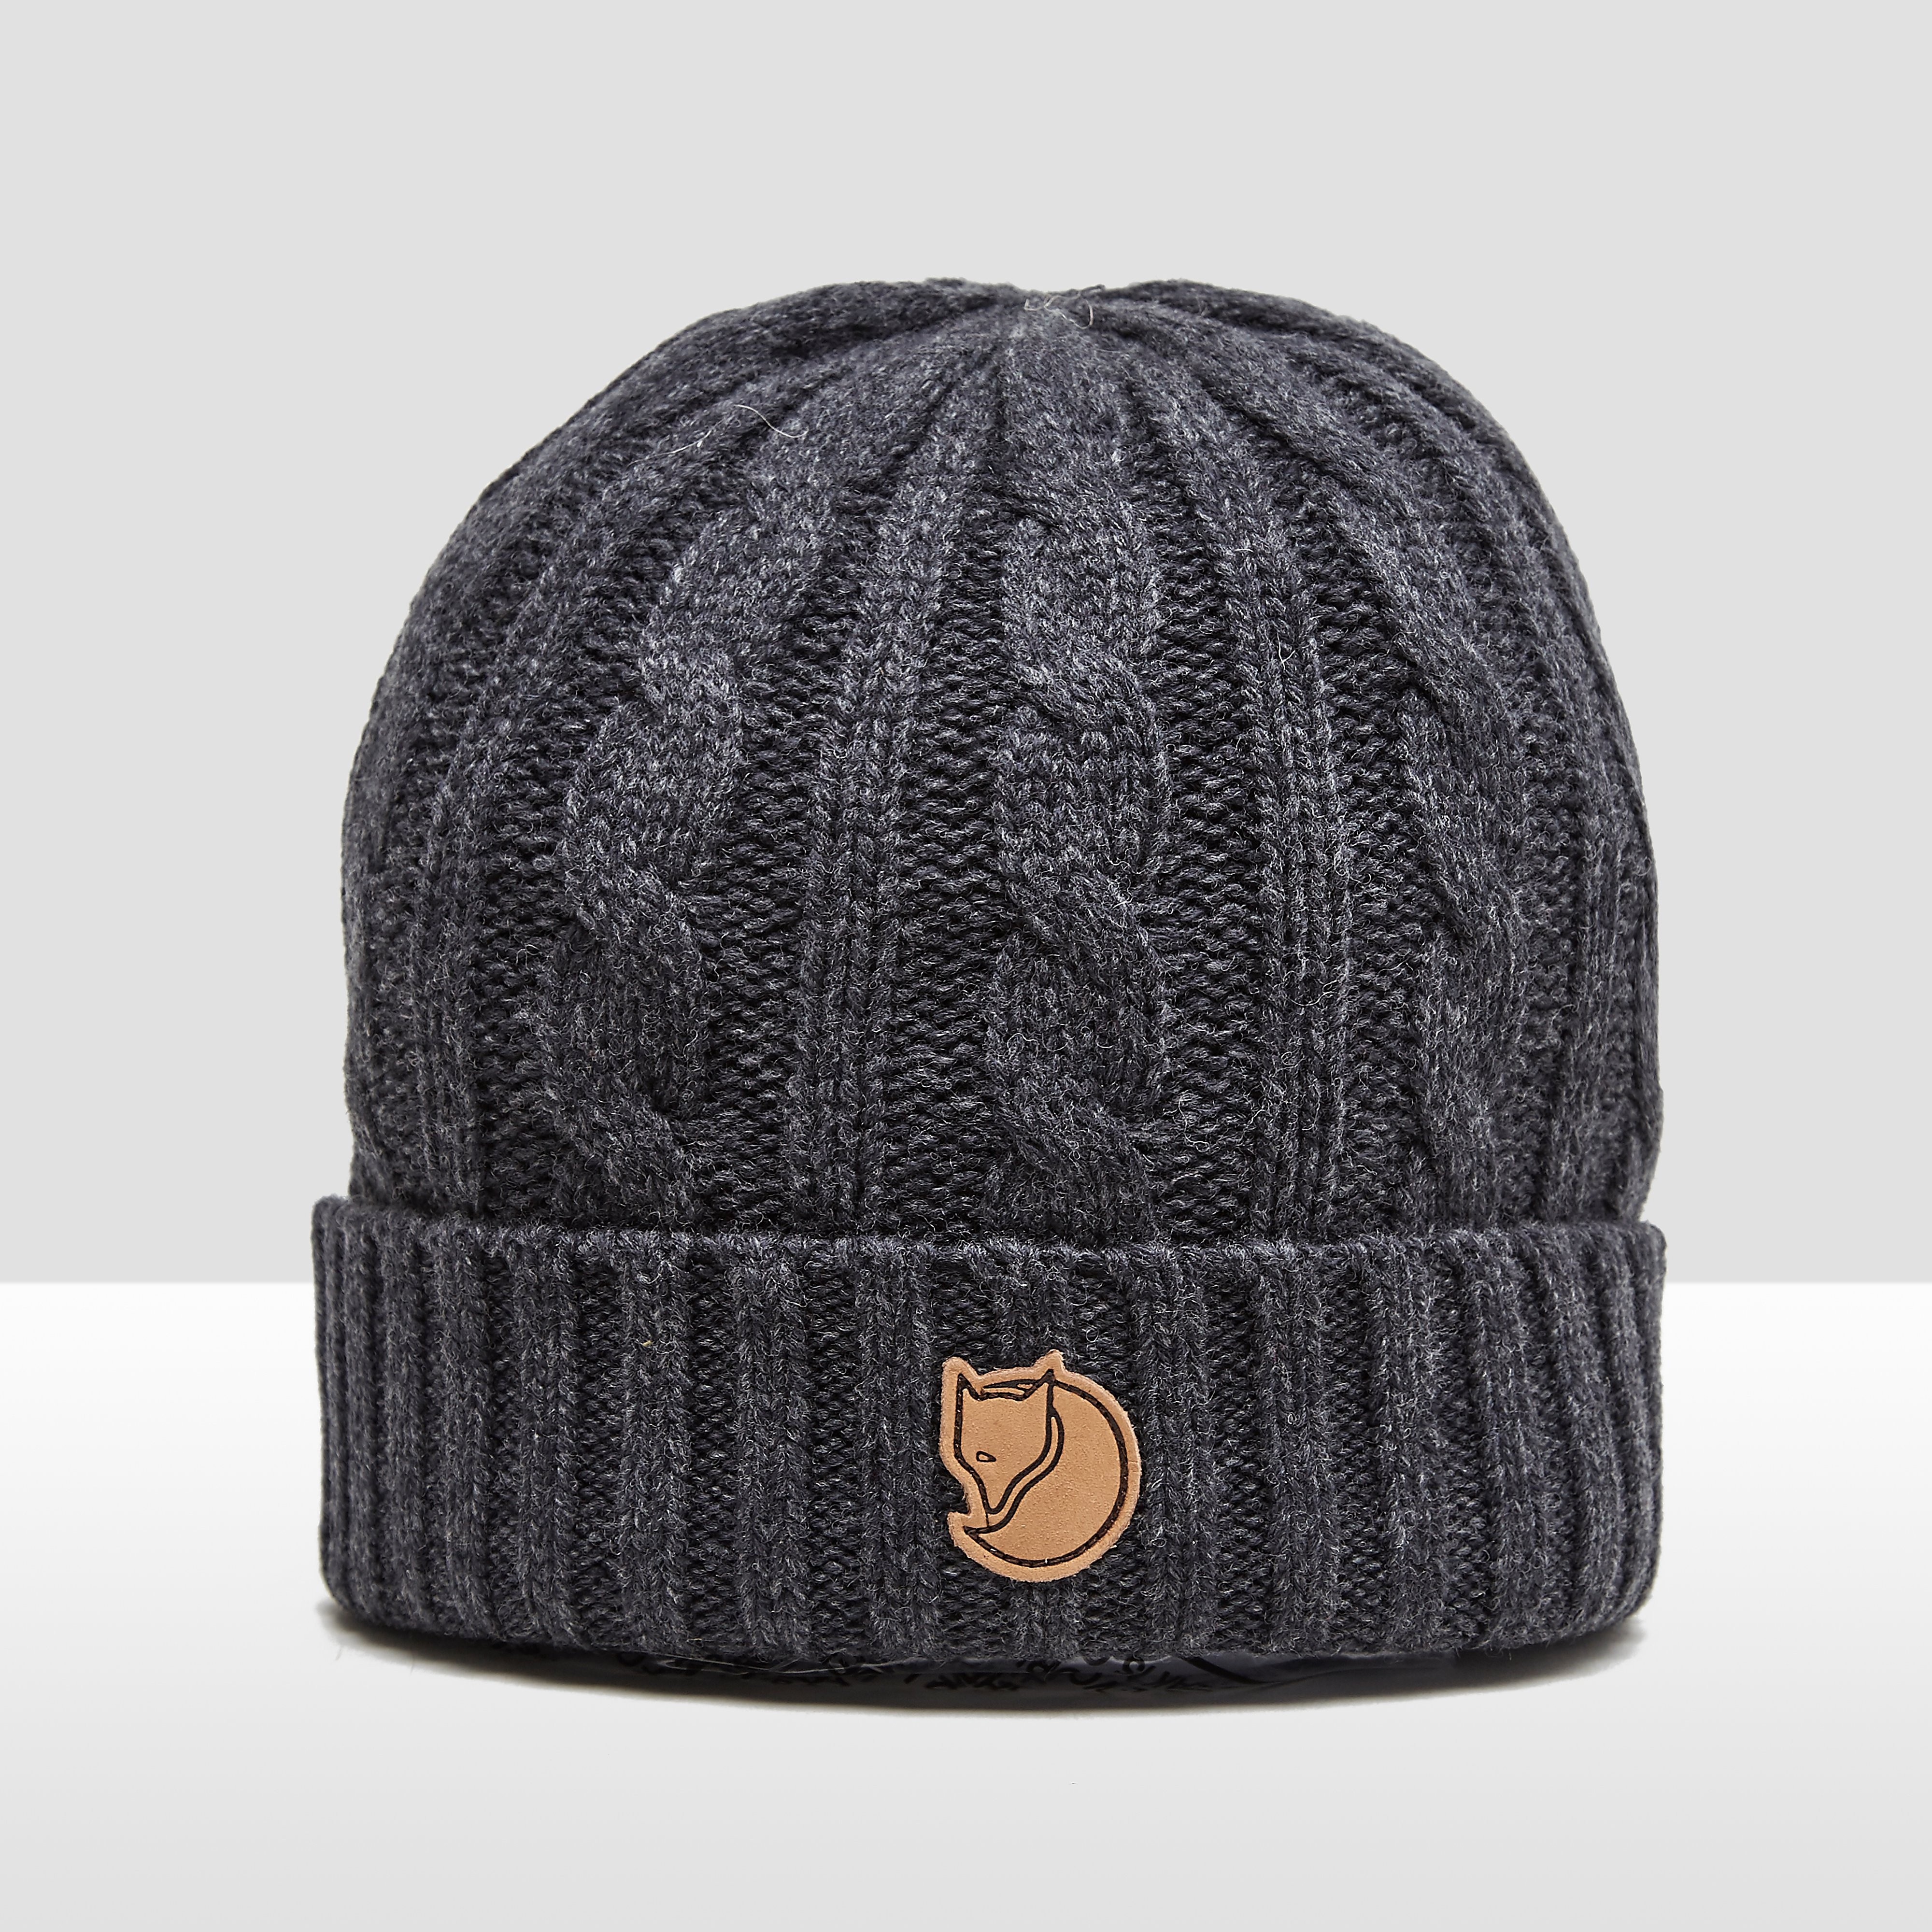 FJALLRAVEN BRAIDED KNIT MUTS GRIJS